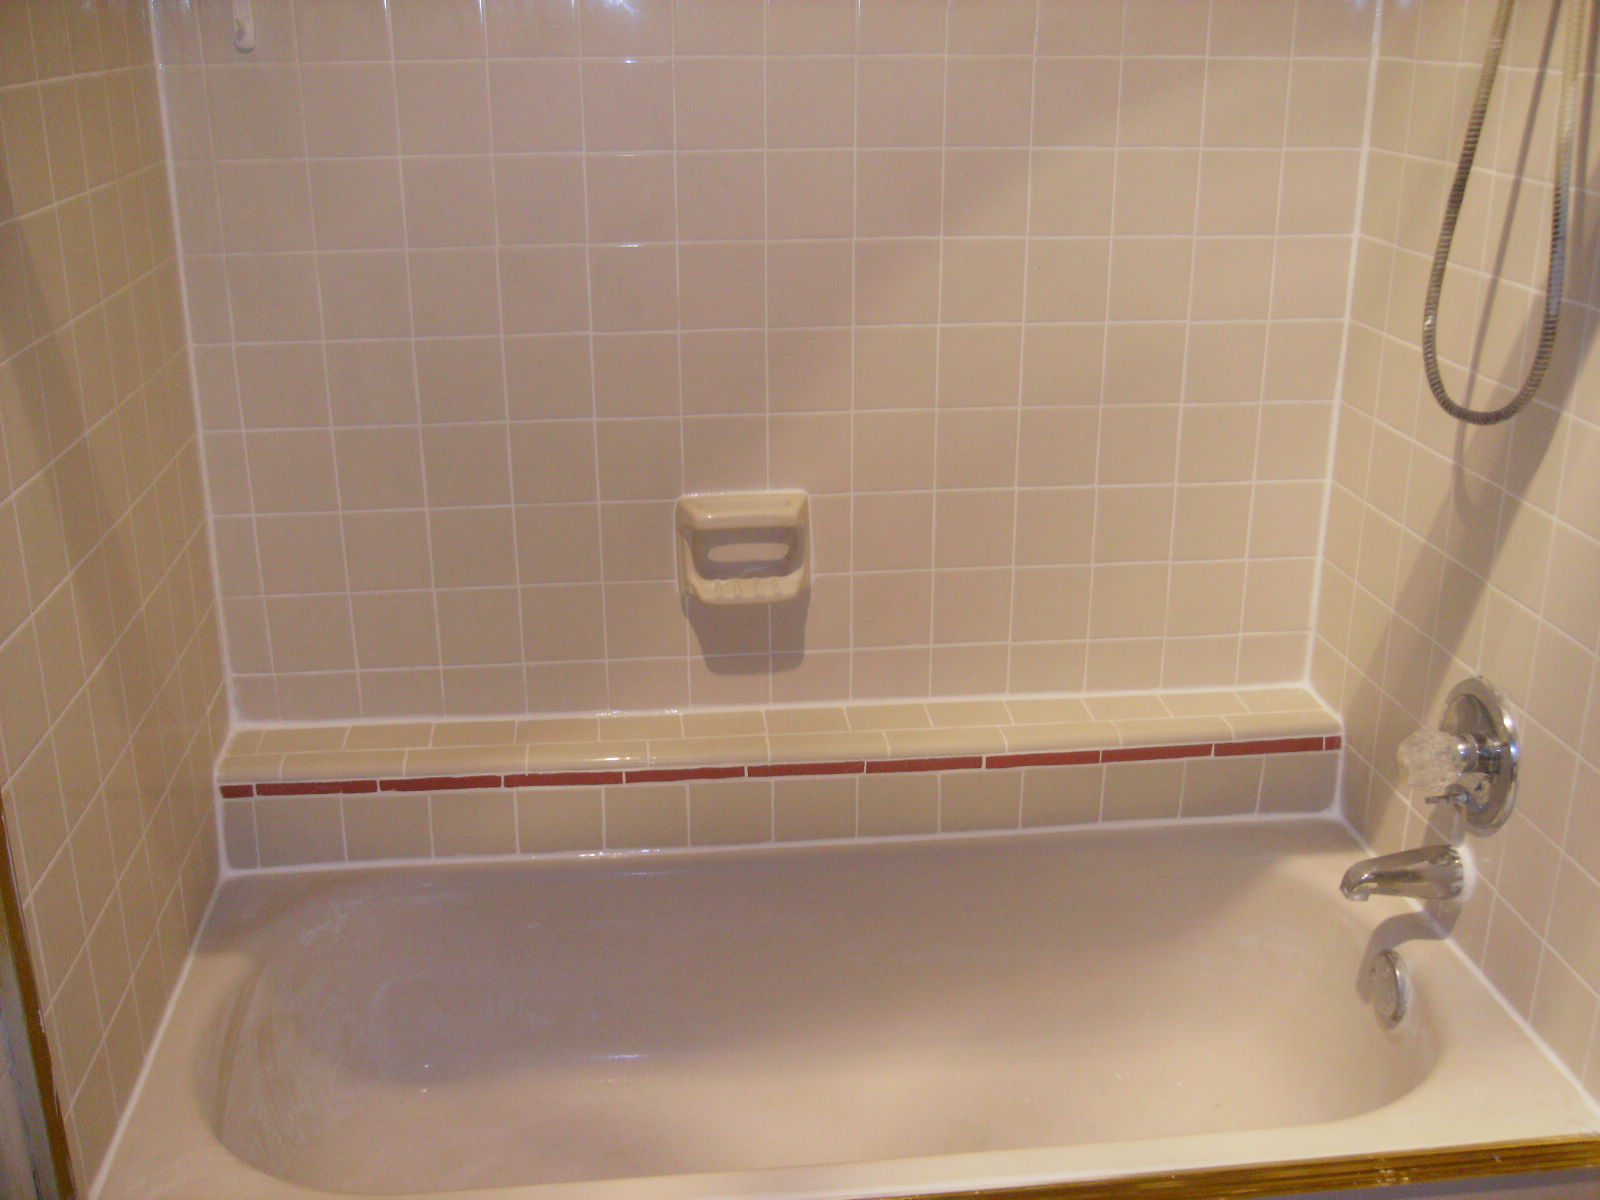 How To Make Your Shower Tile Last Longer | Confessions Of A Tile Setter